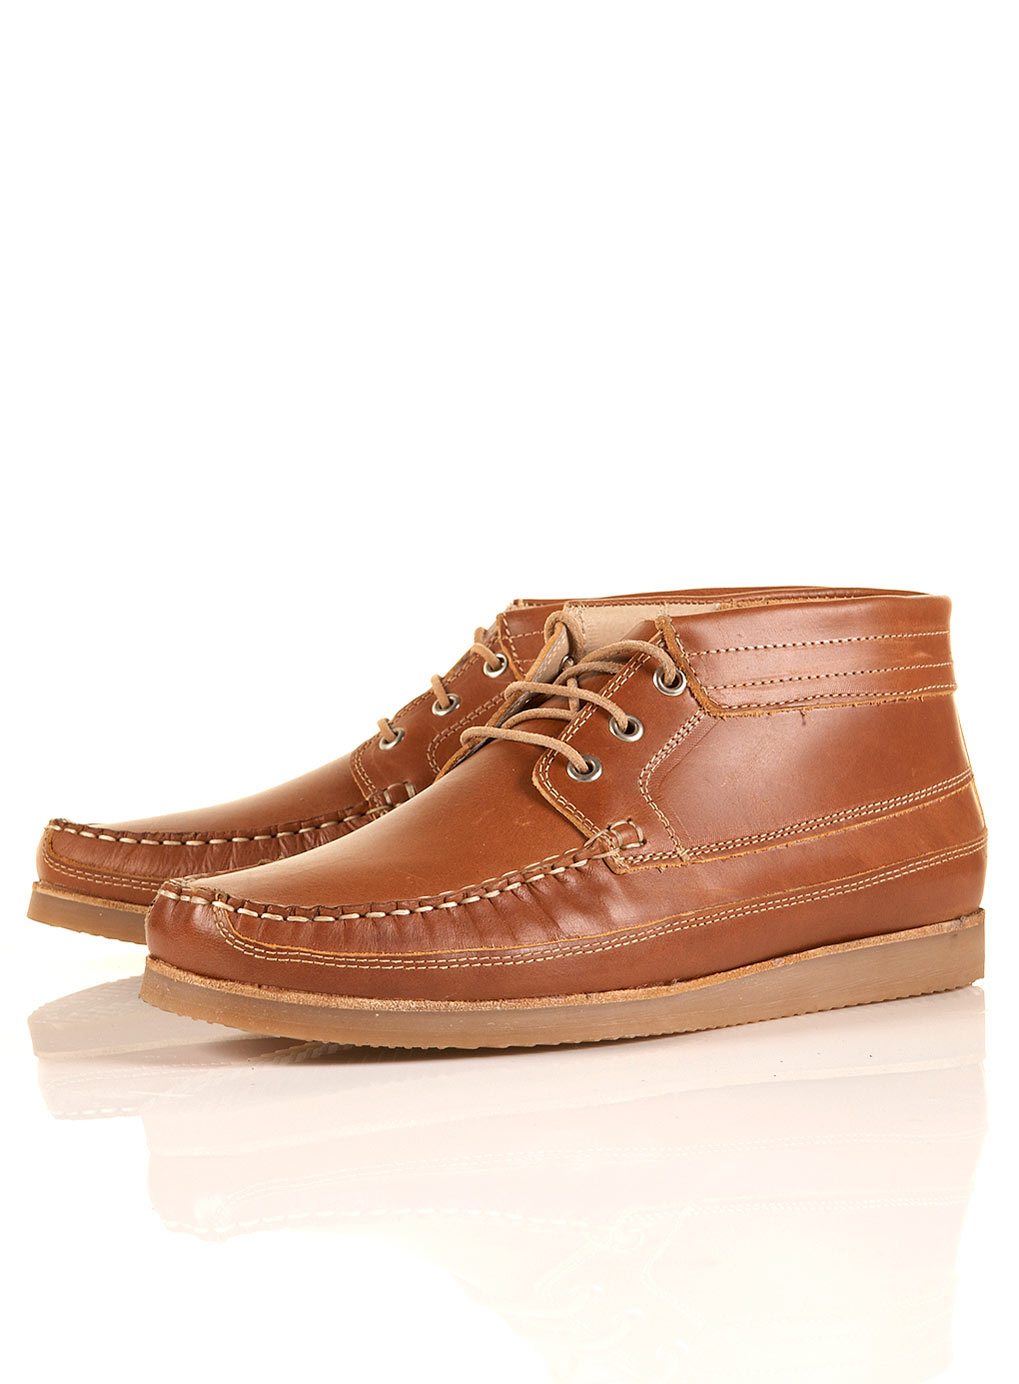 topman oliver spencer boat boots in brown for lyst